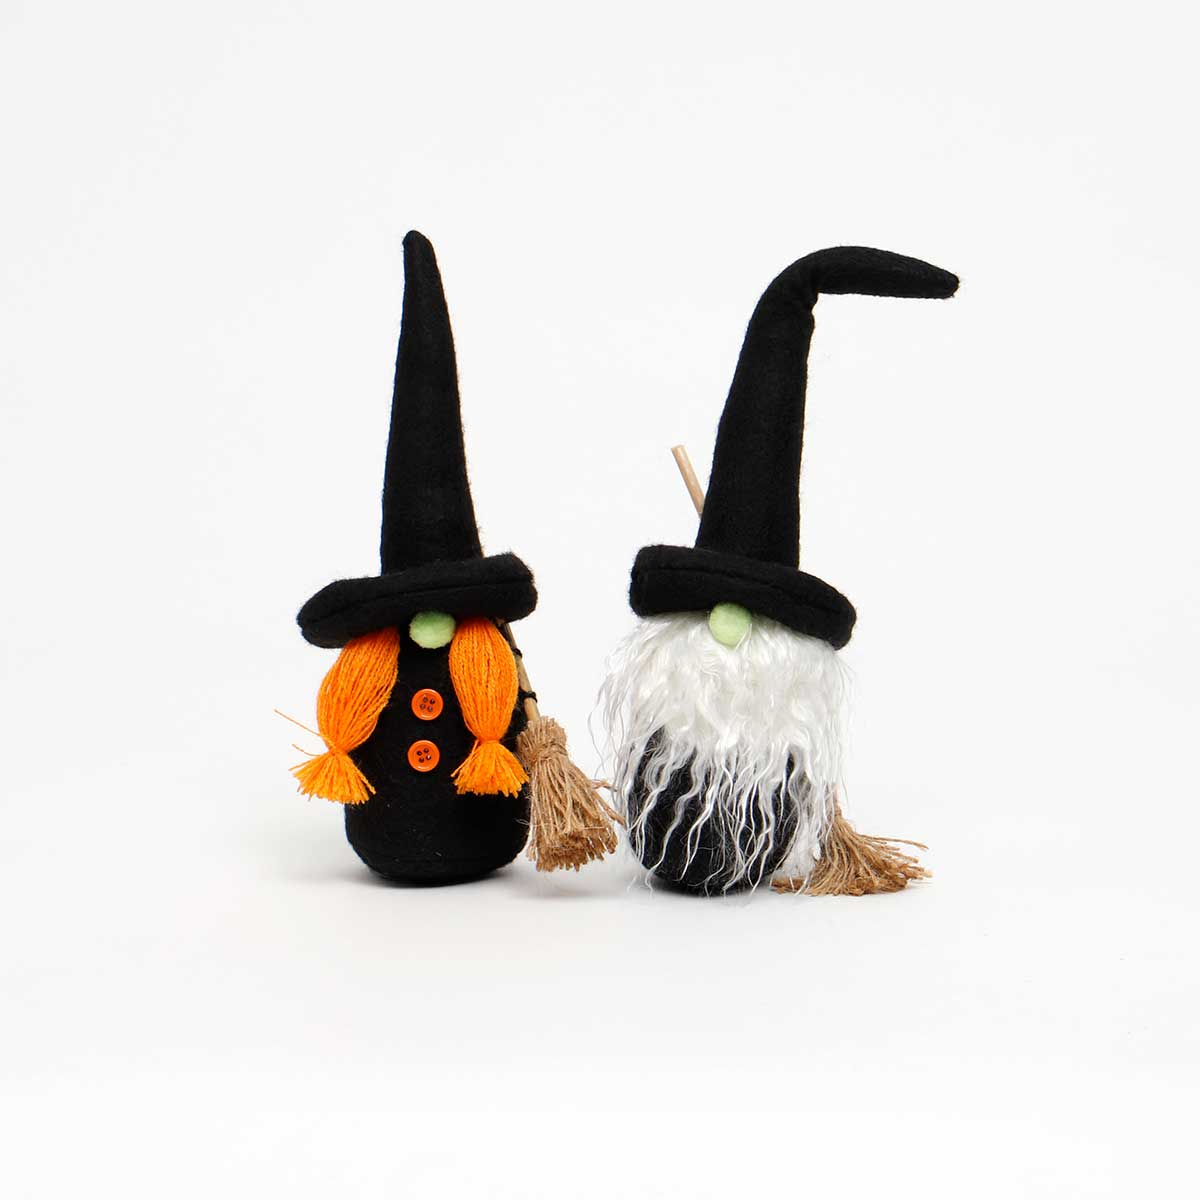 WITCH GNOME WITH BROOM